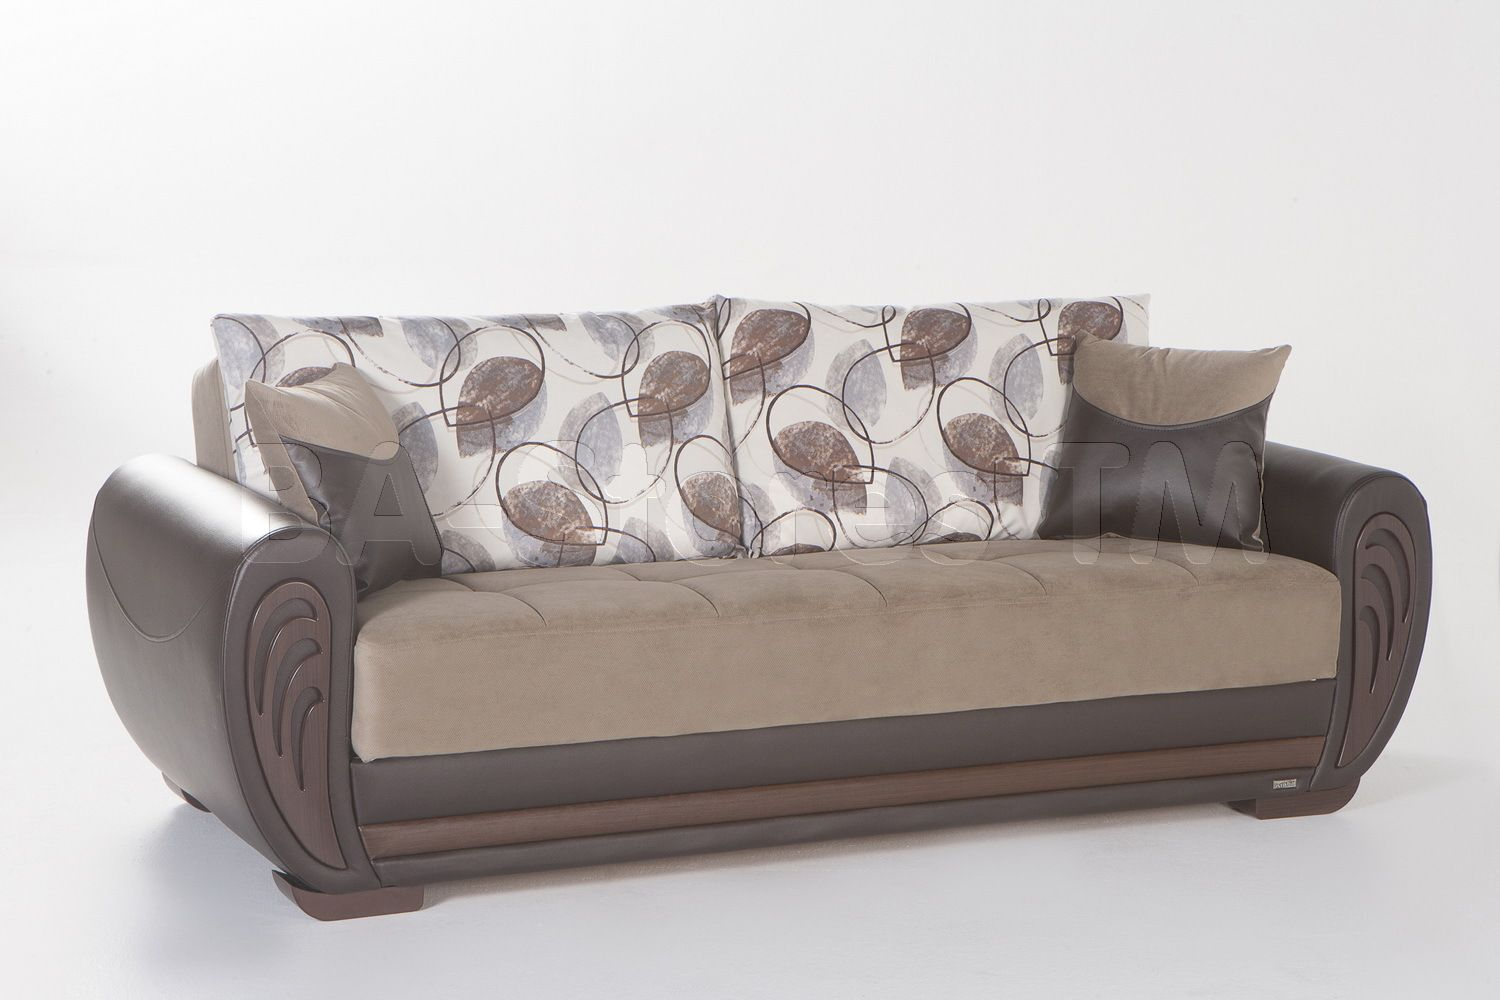 Marina Sofa Bed In Nepal Vizon By Istikbal Sofa Bed Sofa Istikbal Furniture